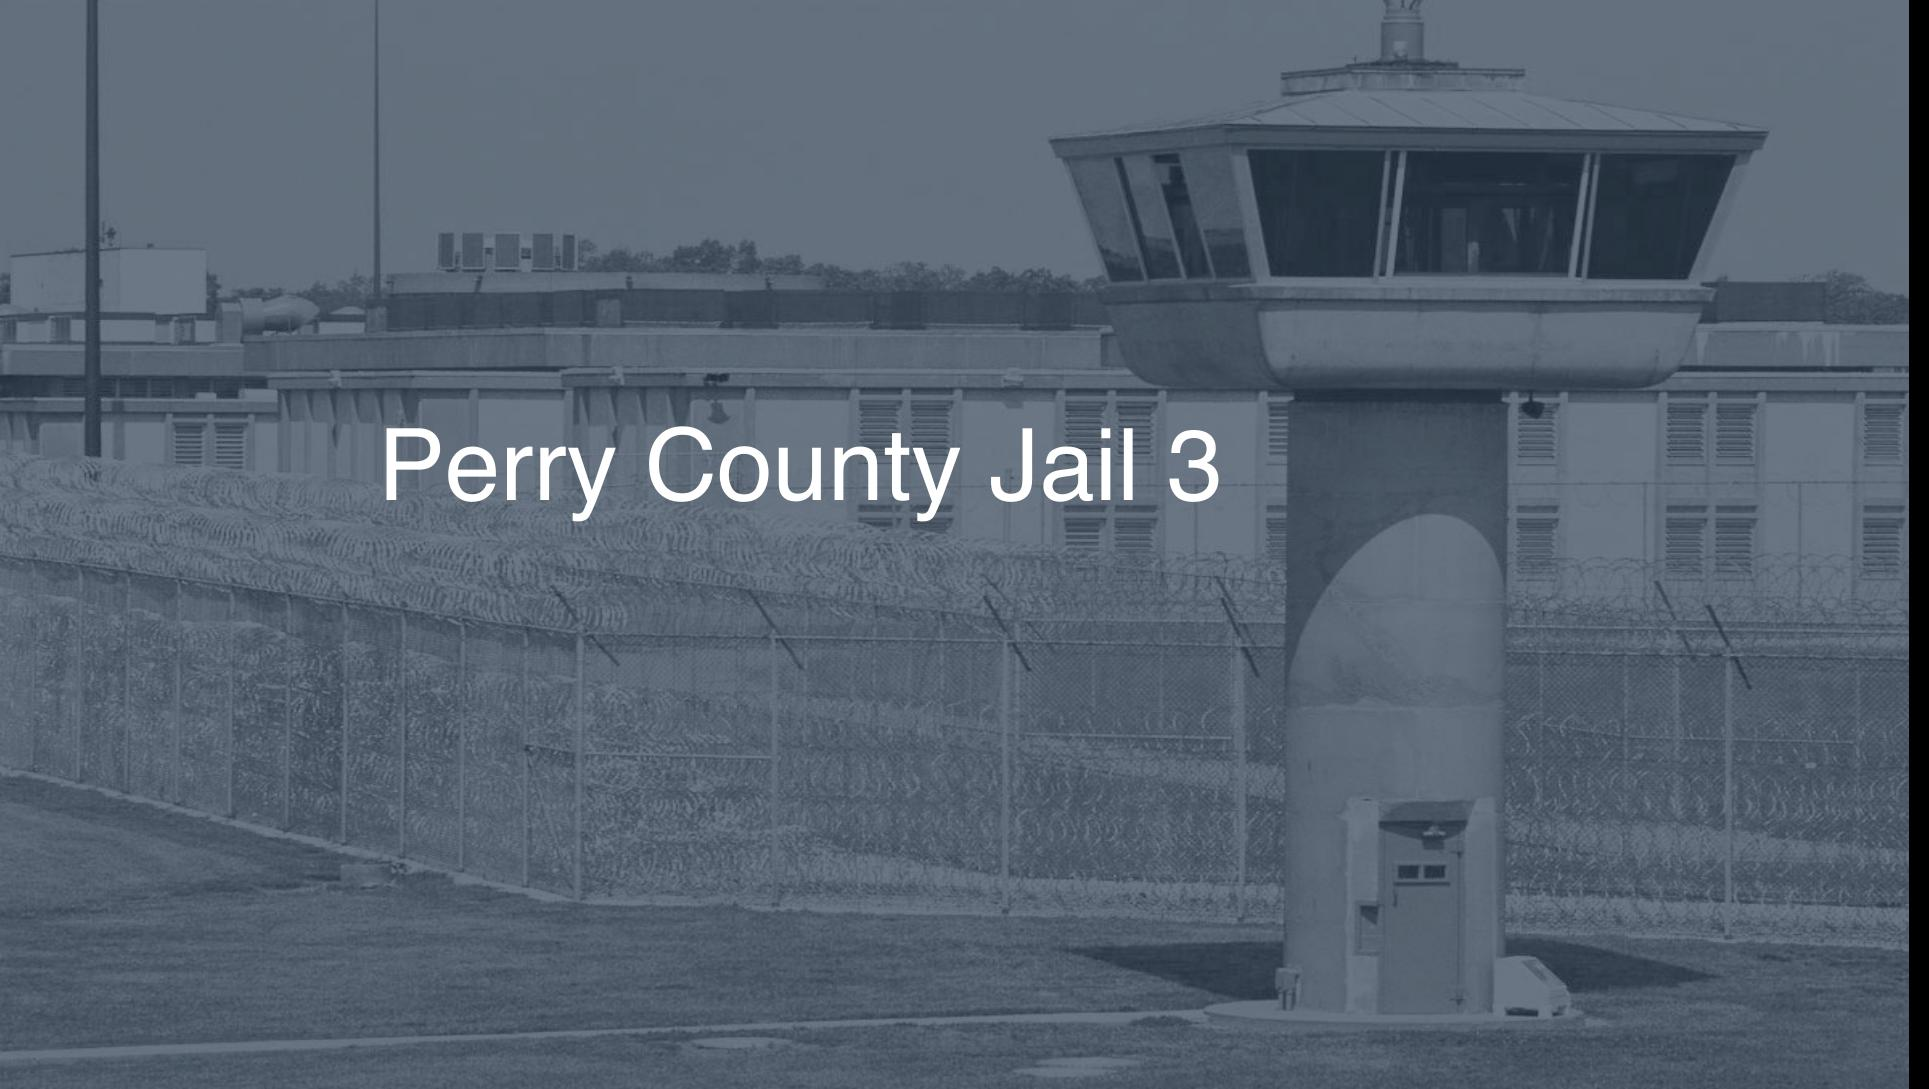 Perry County Jail   Pigeonly - Inmate Search, Locate